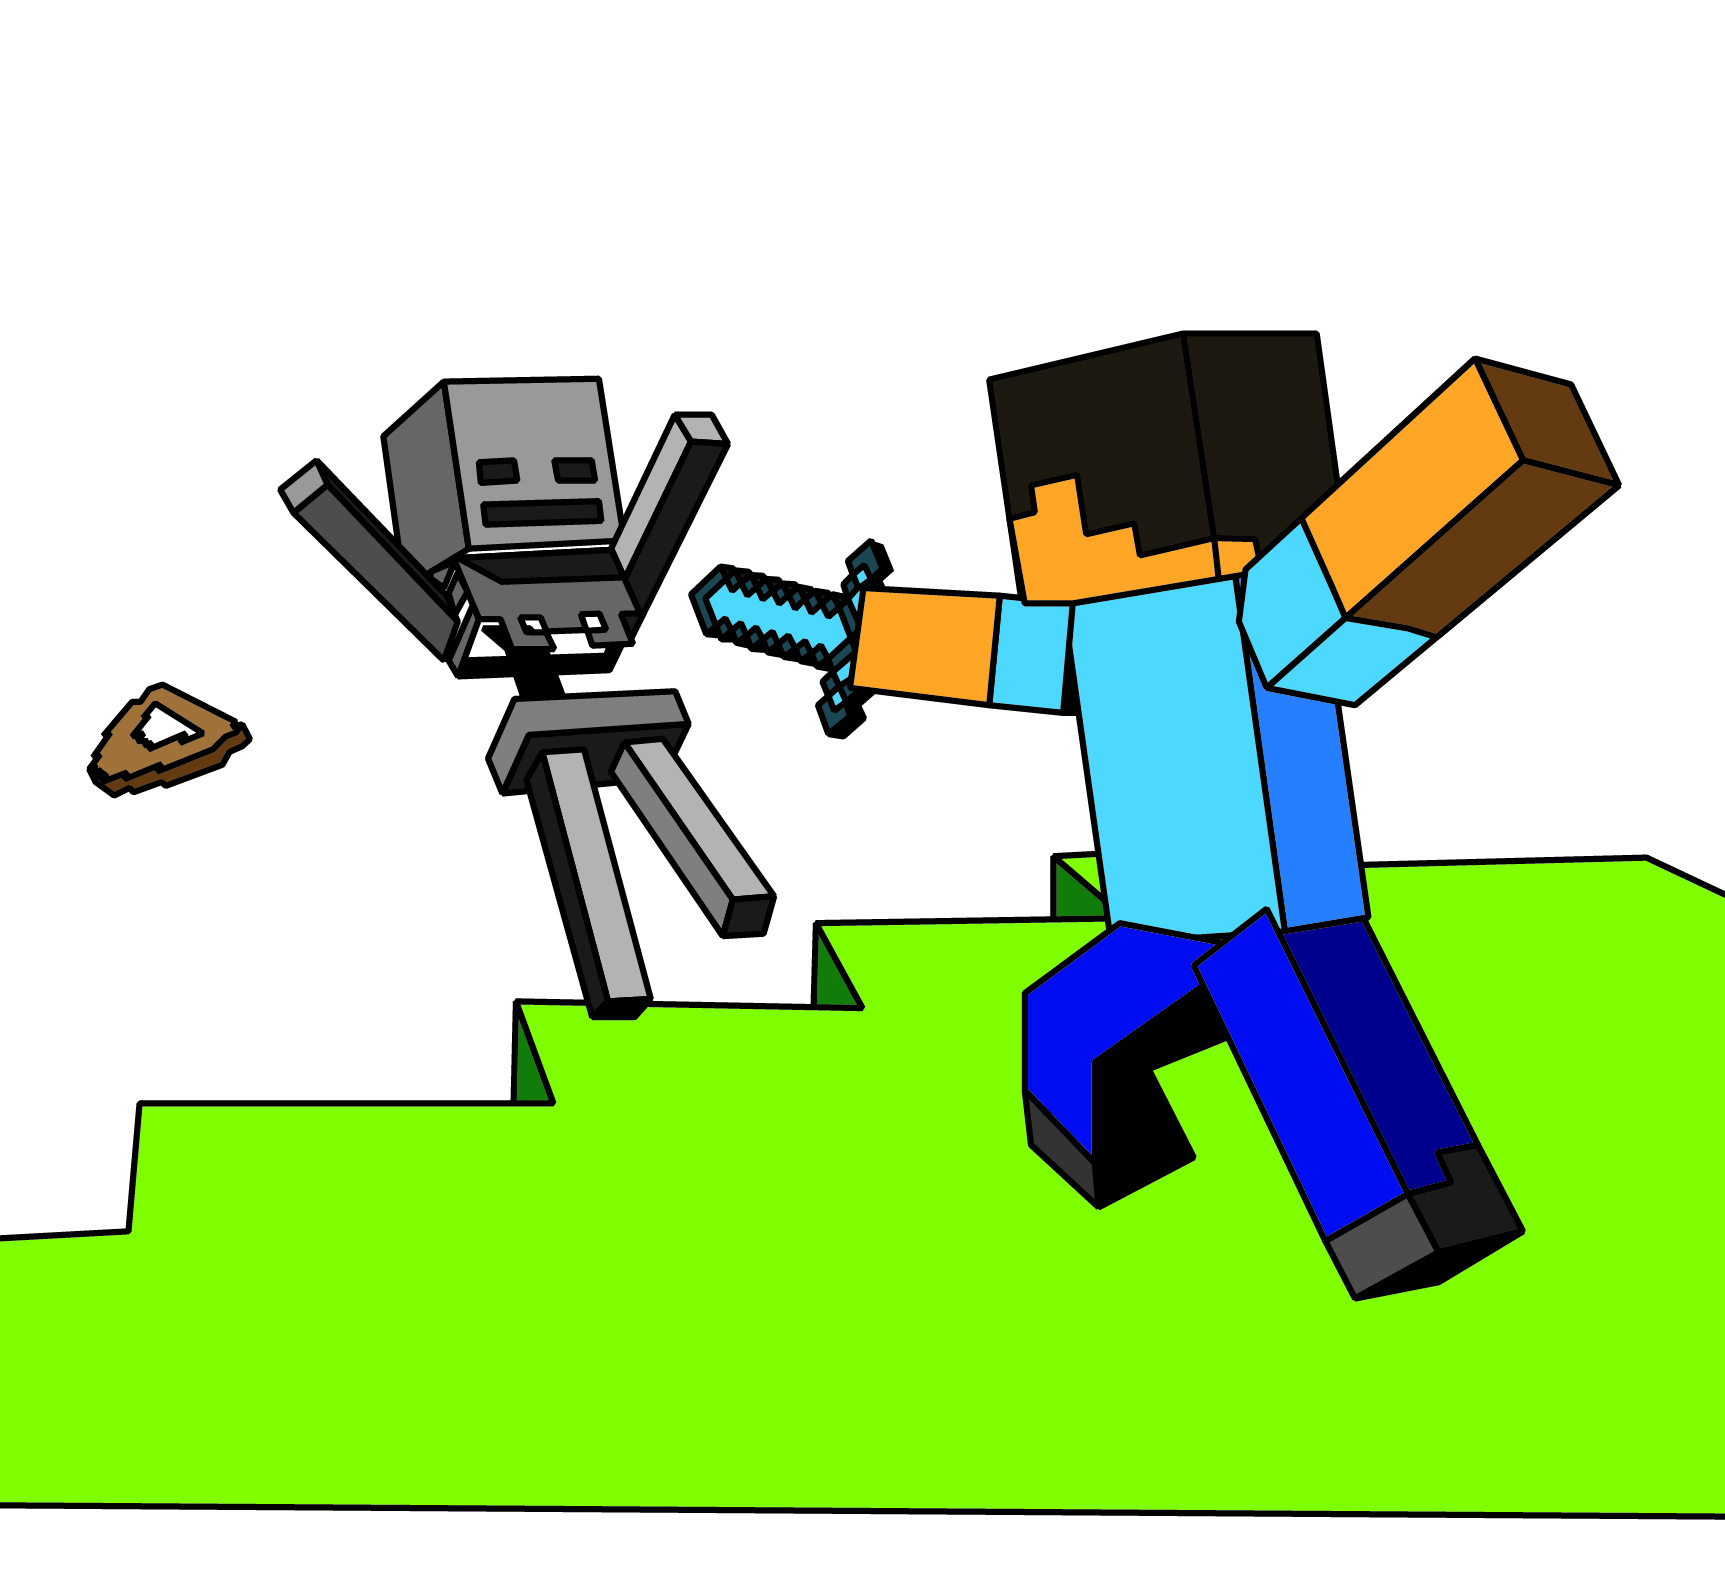 Minecraft_coloring_page_colored.jpg